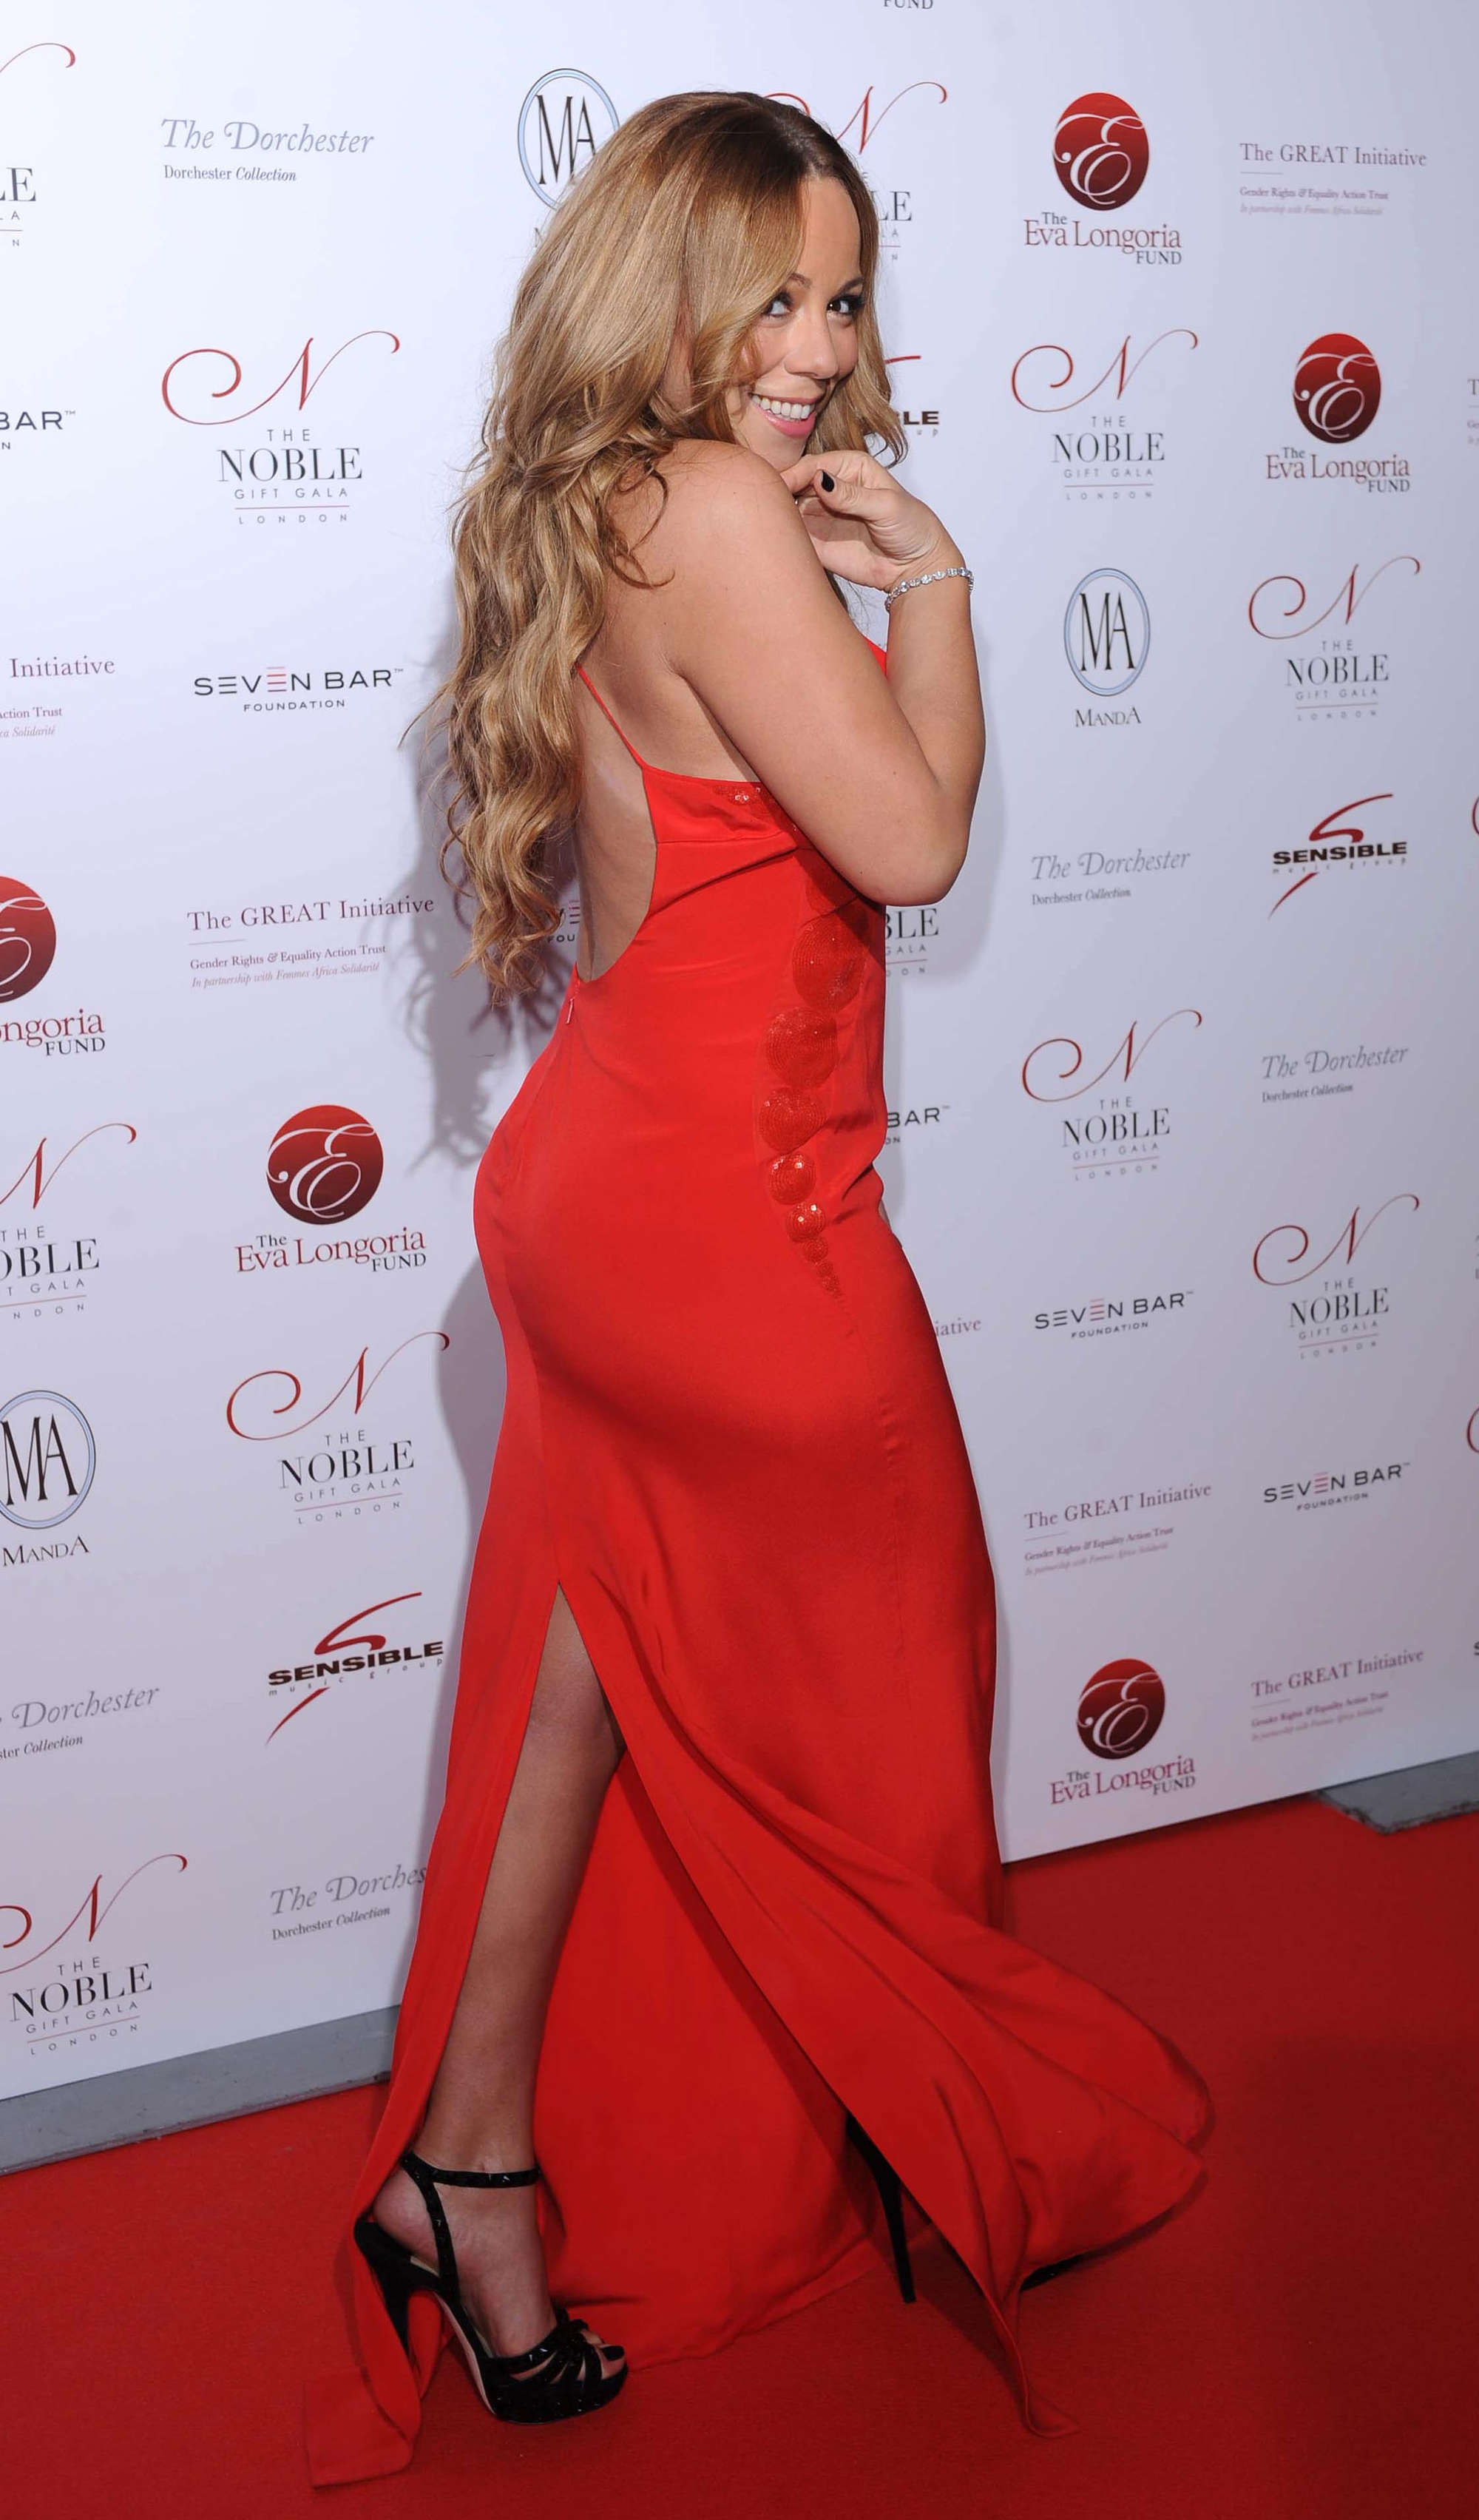 Mariah Carey Cleavage In Red Dress At Noble Gift Gala 05